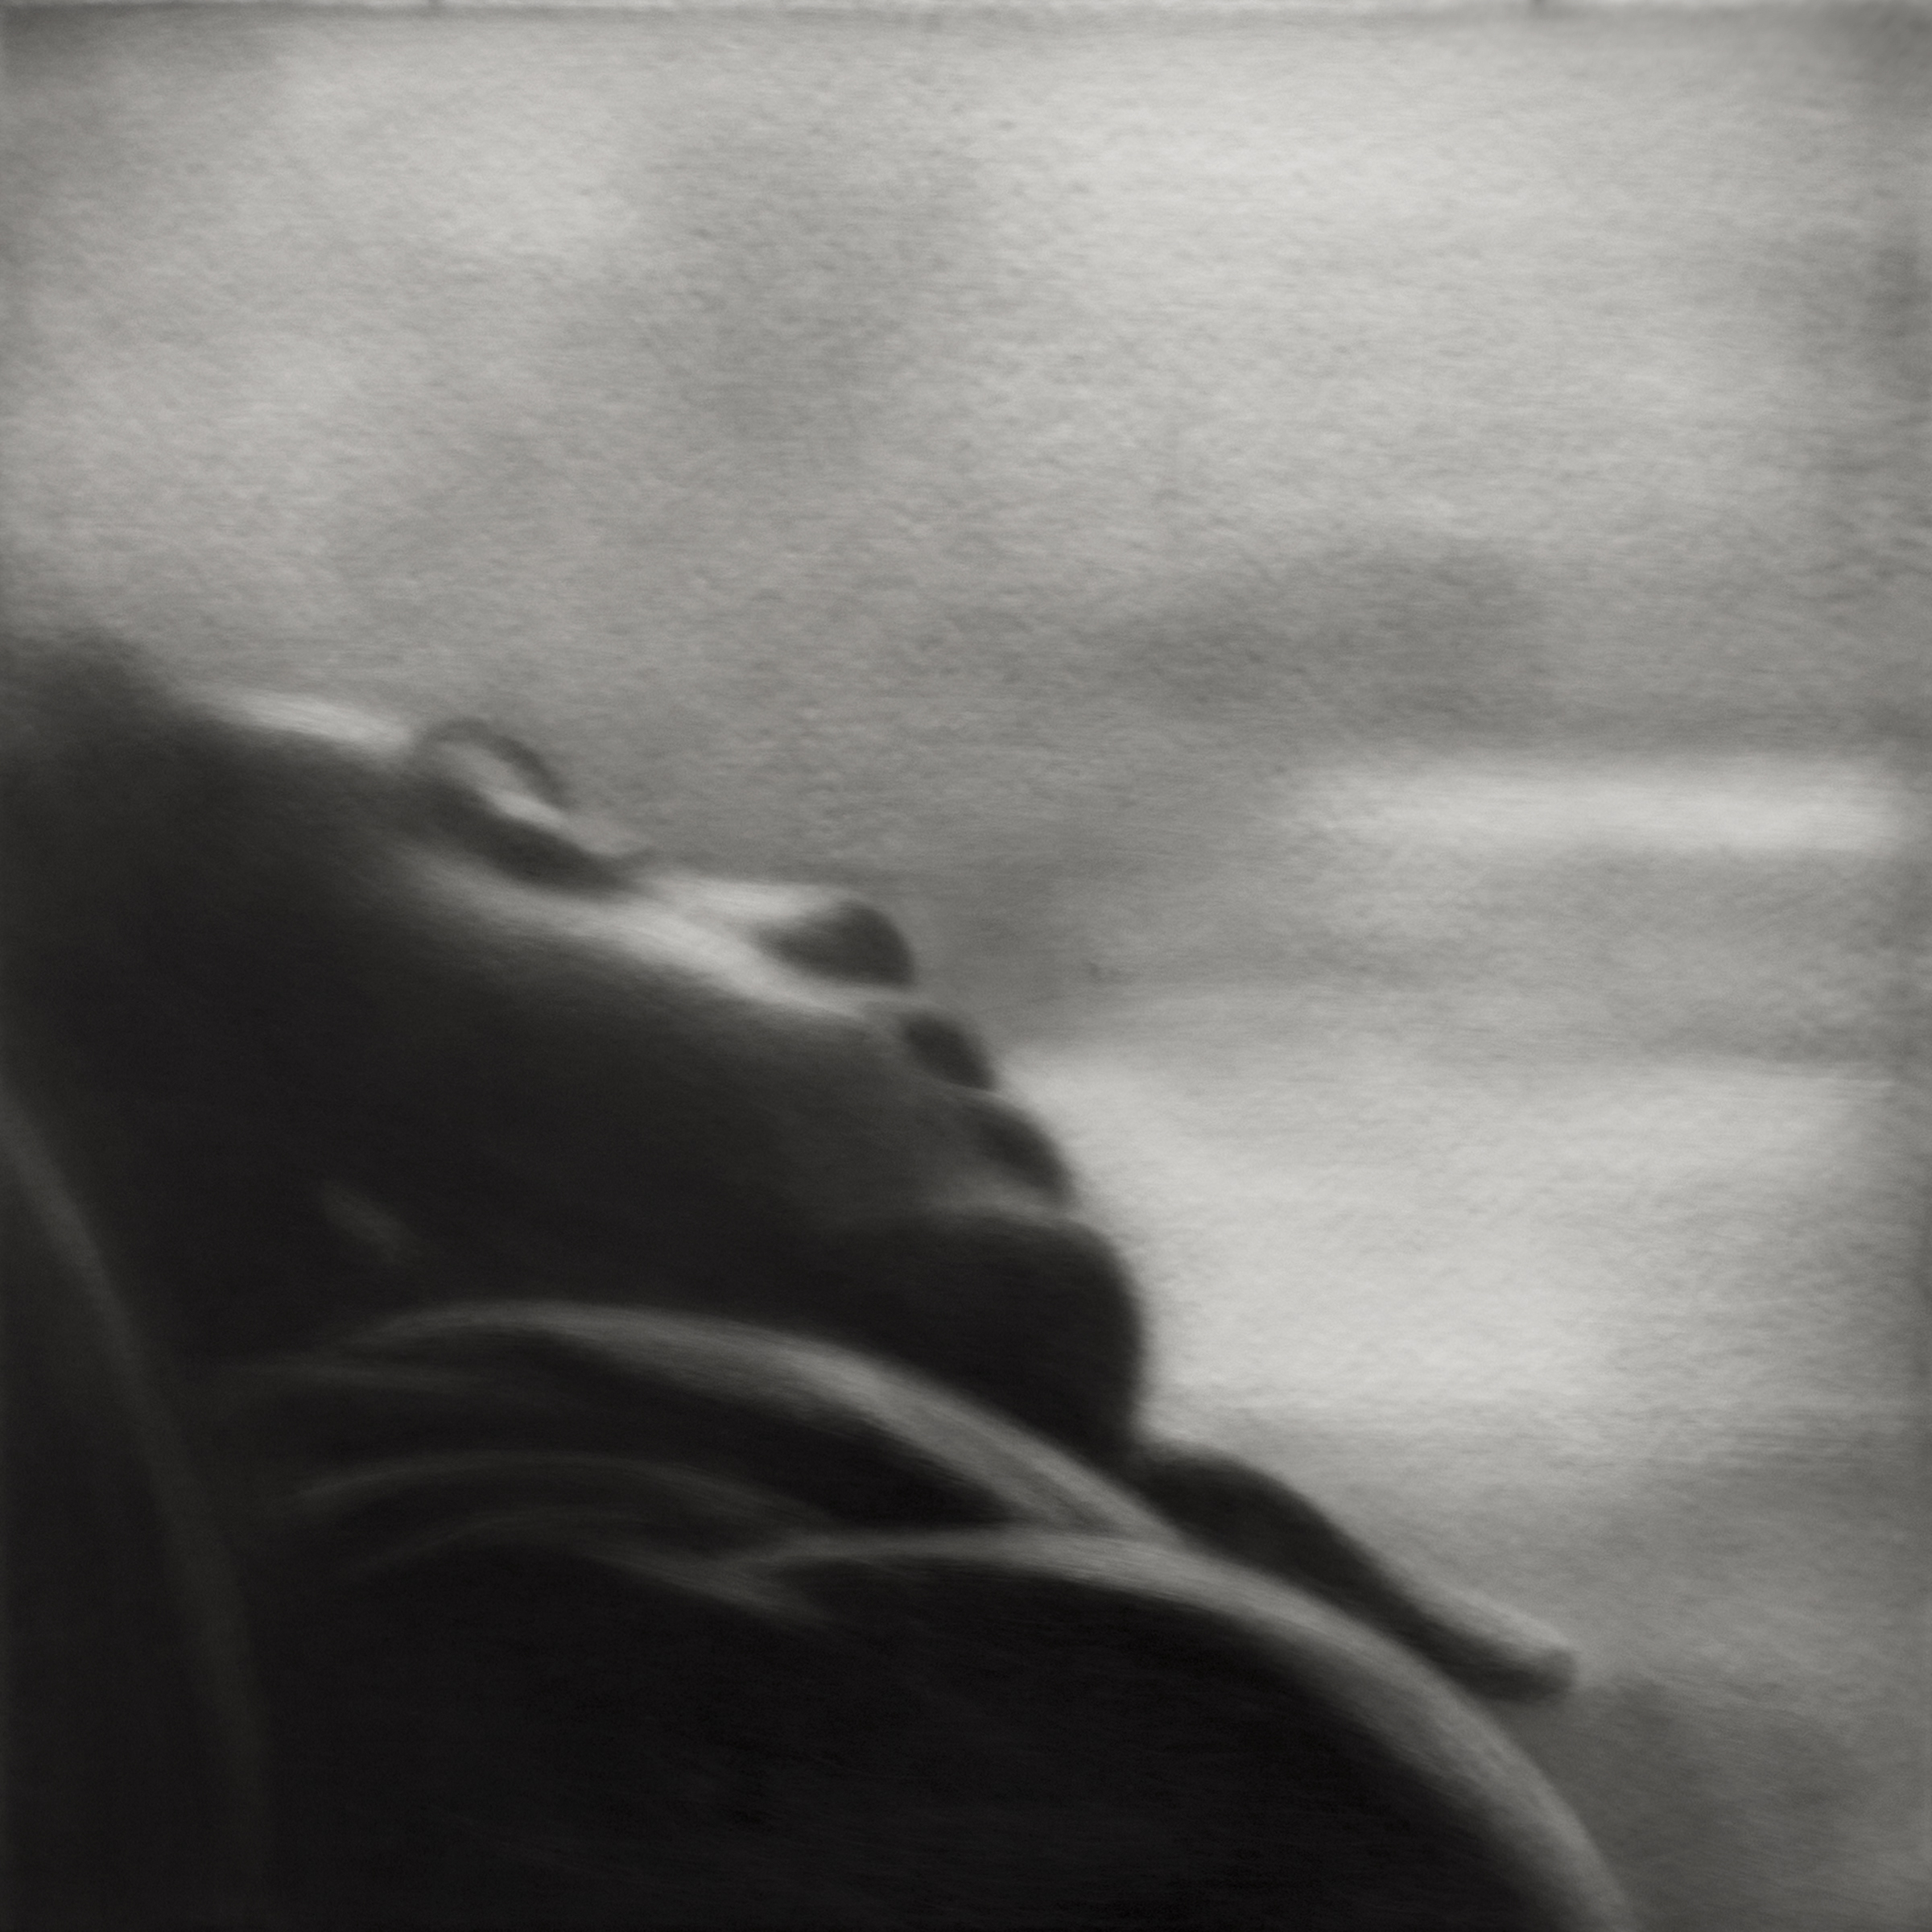 "Sarah Leahy, Sleeping Woman, Black India ink painted onto the surface of sanded plexiglass, 12"" by 12"",  http://www.sarahleahy.com"